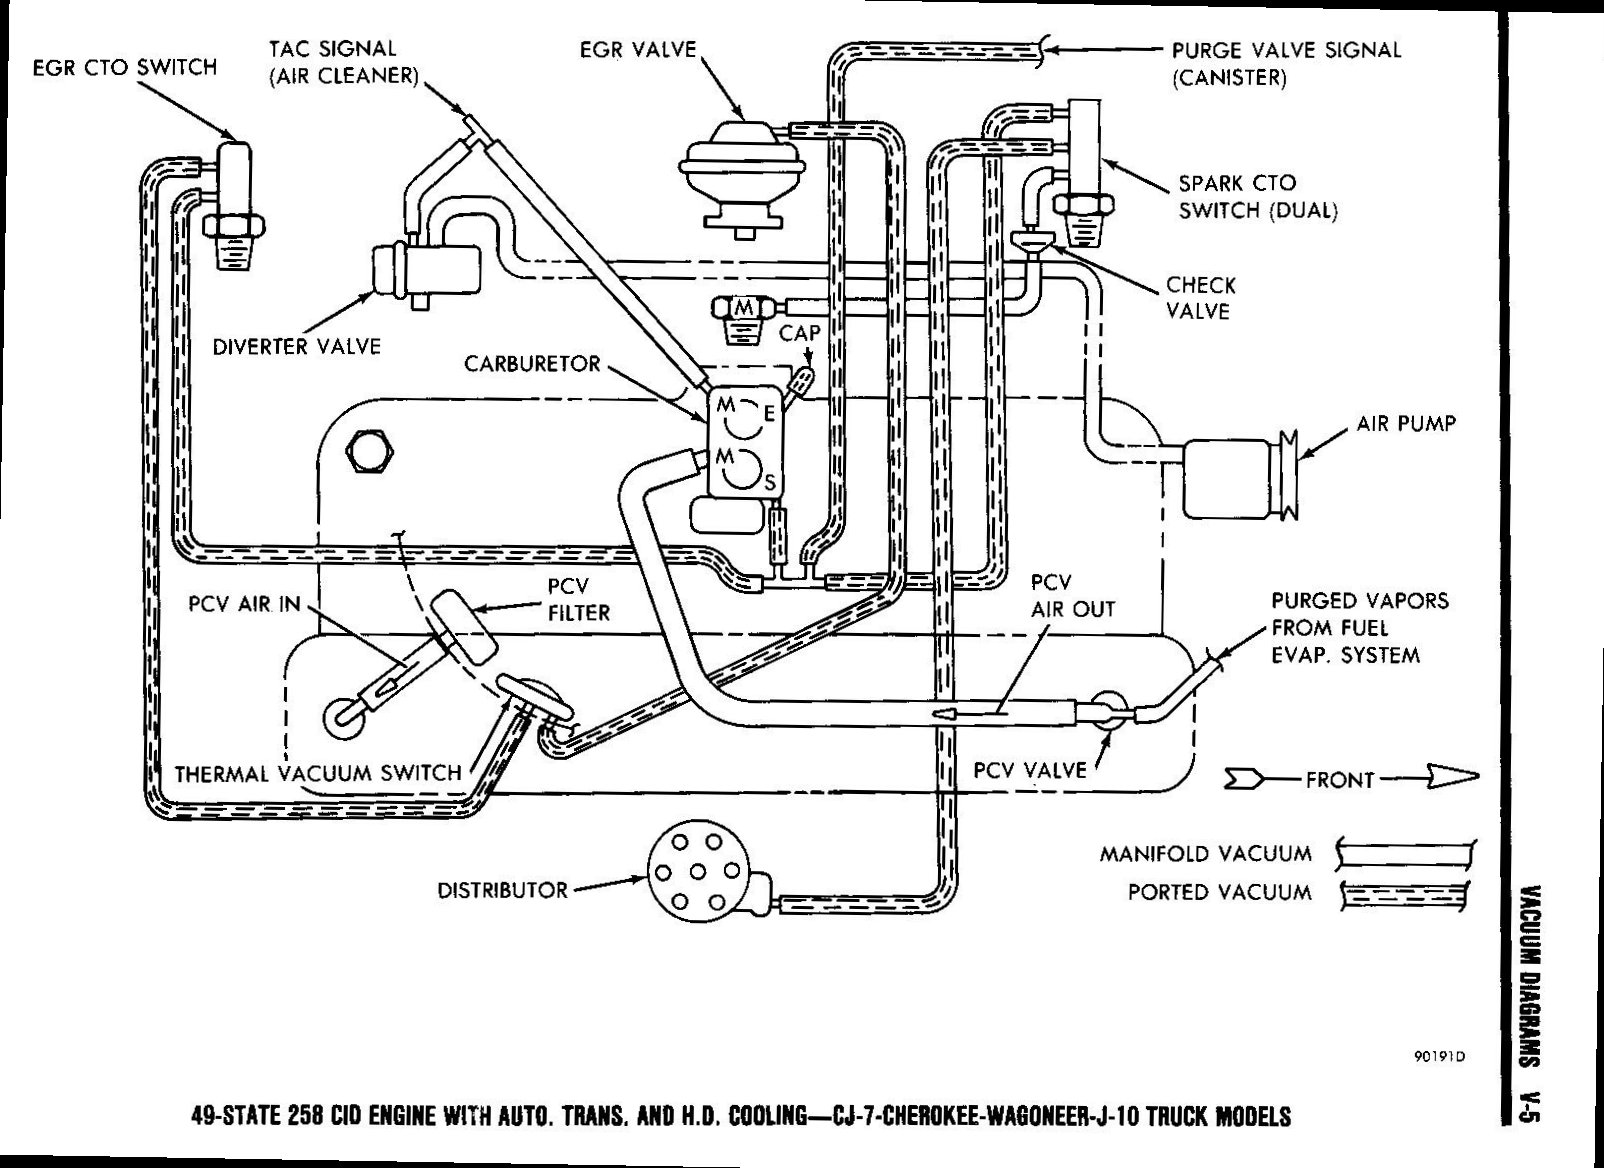 hight resolution of amc 304 jeep engine diagram wiring library rh 37 evitta de jeep 304 engine painting amc